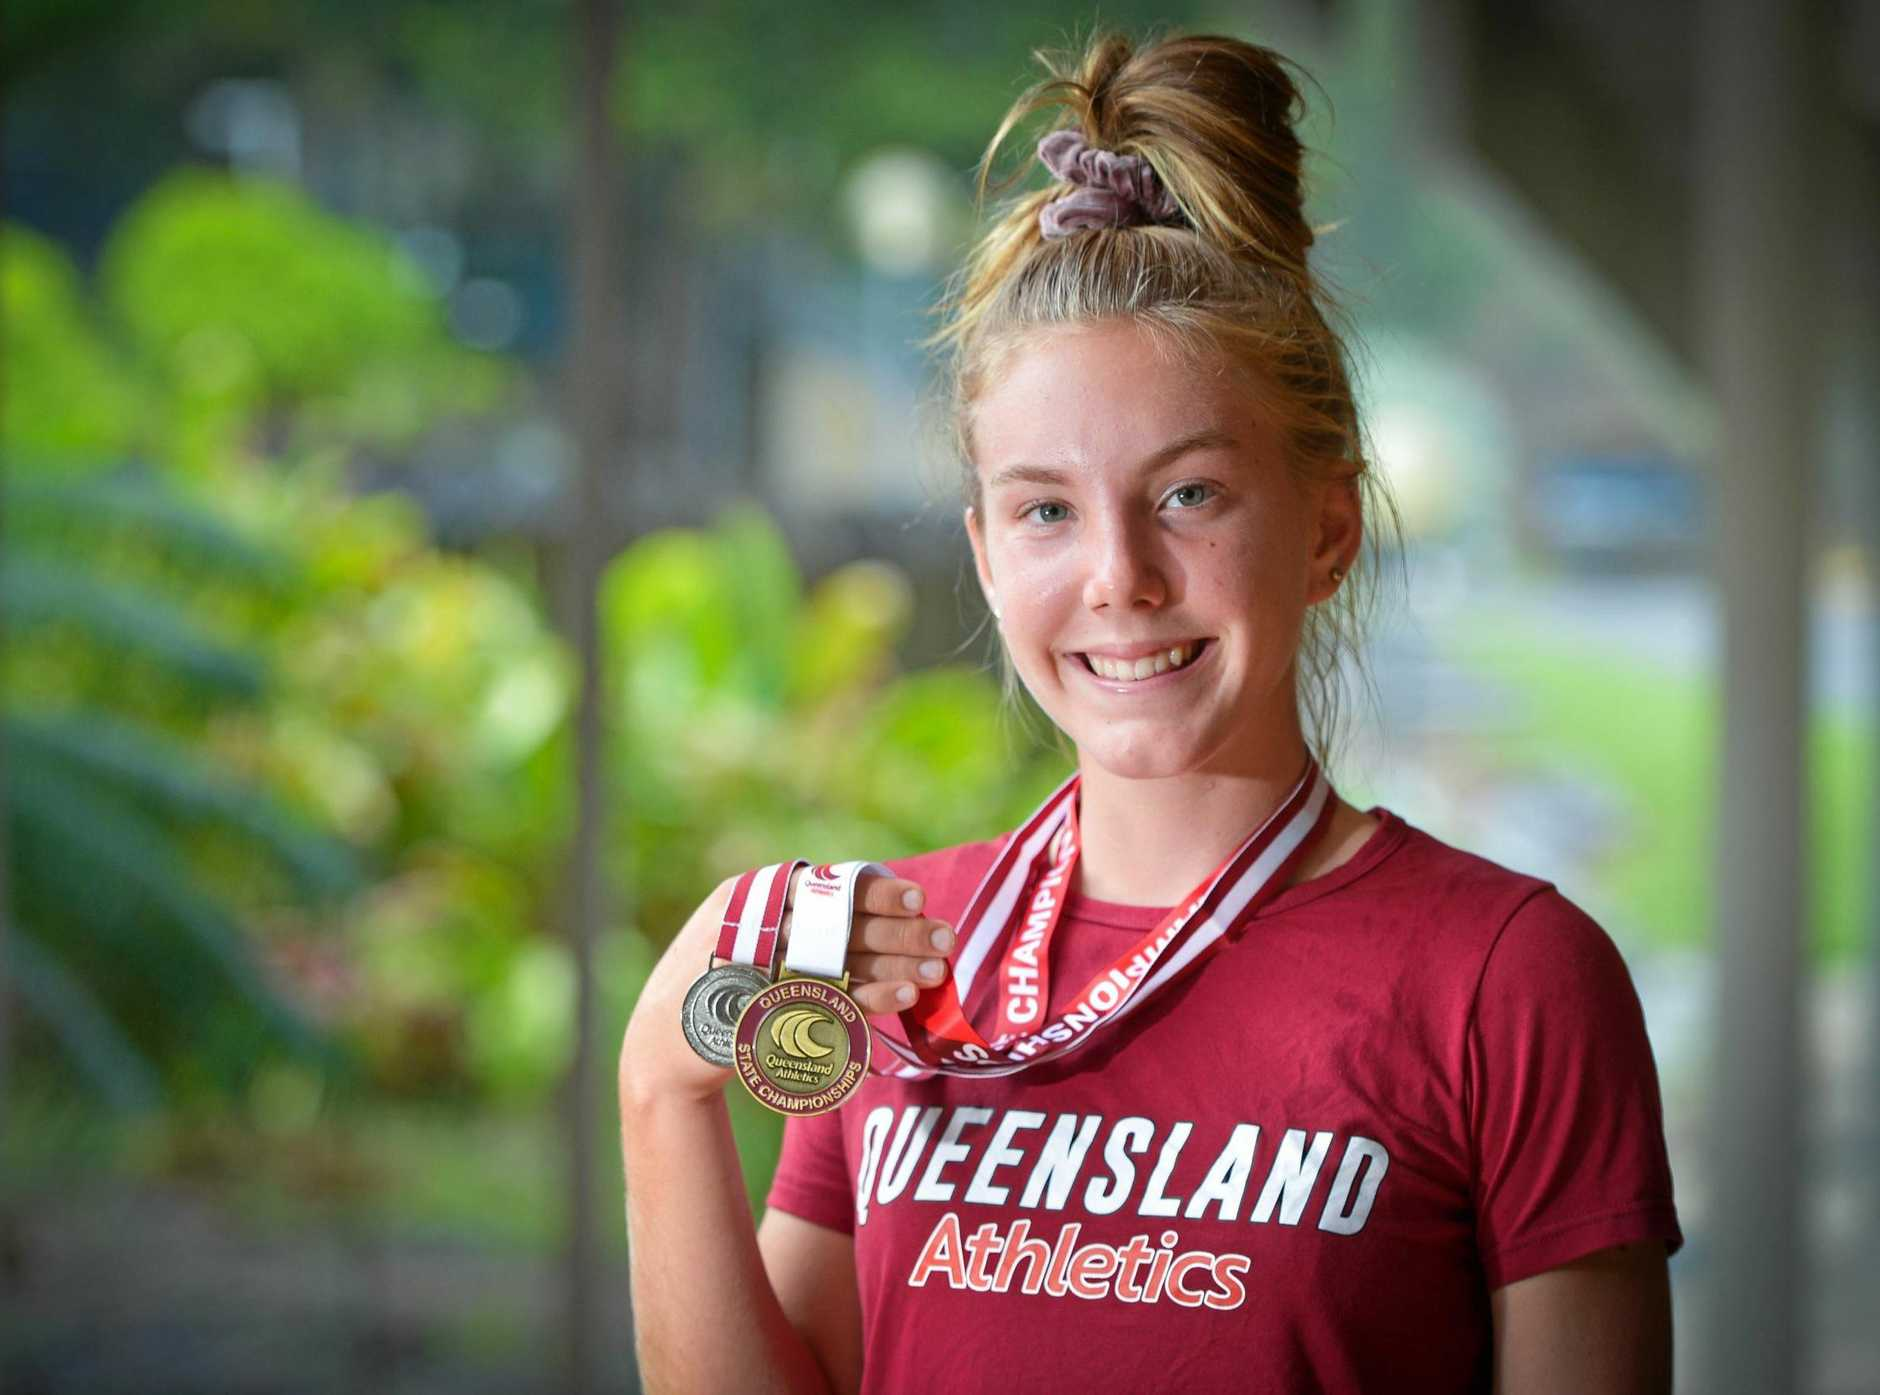 TOUGH DUFF: Sophie Duff won gold in the under-15 girl's triple jump at the Queensland Junior Athletics Championships in Brisbane last weekend.